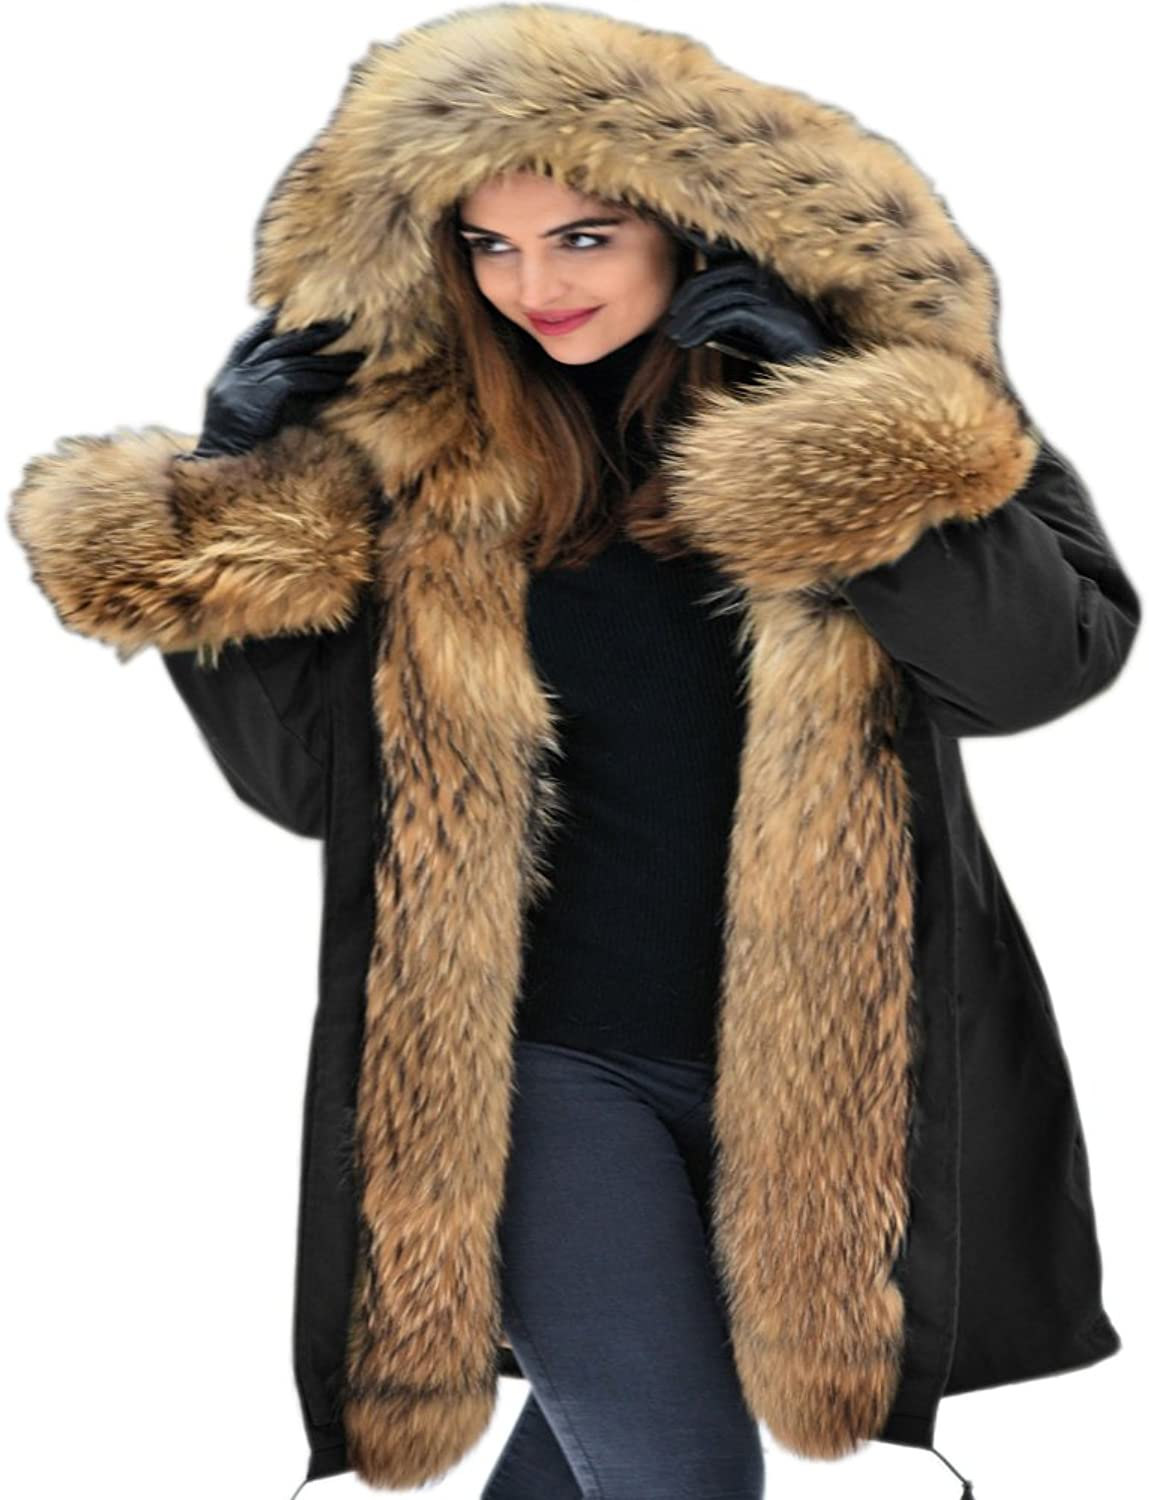 Aofur Womens Hooded Faux Fur Lined Warm Coats Parkas Anoraks Outwear Winter Long Jackets